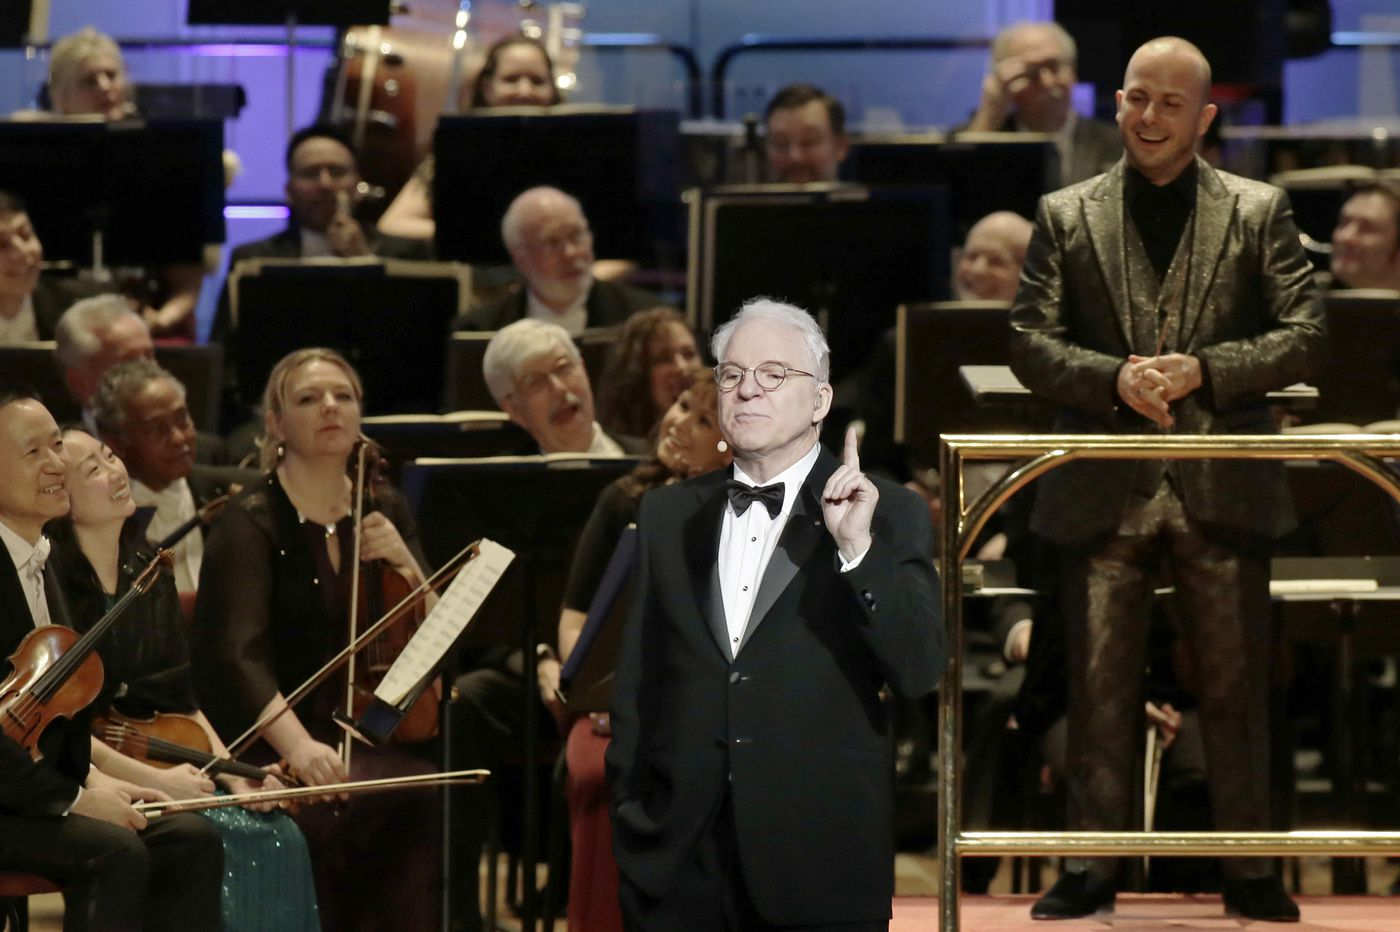 Philadelphia Orchestra plans online gala with Steve Martin, Wynton Marsalis, and a new commission honoring frontline workers